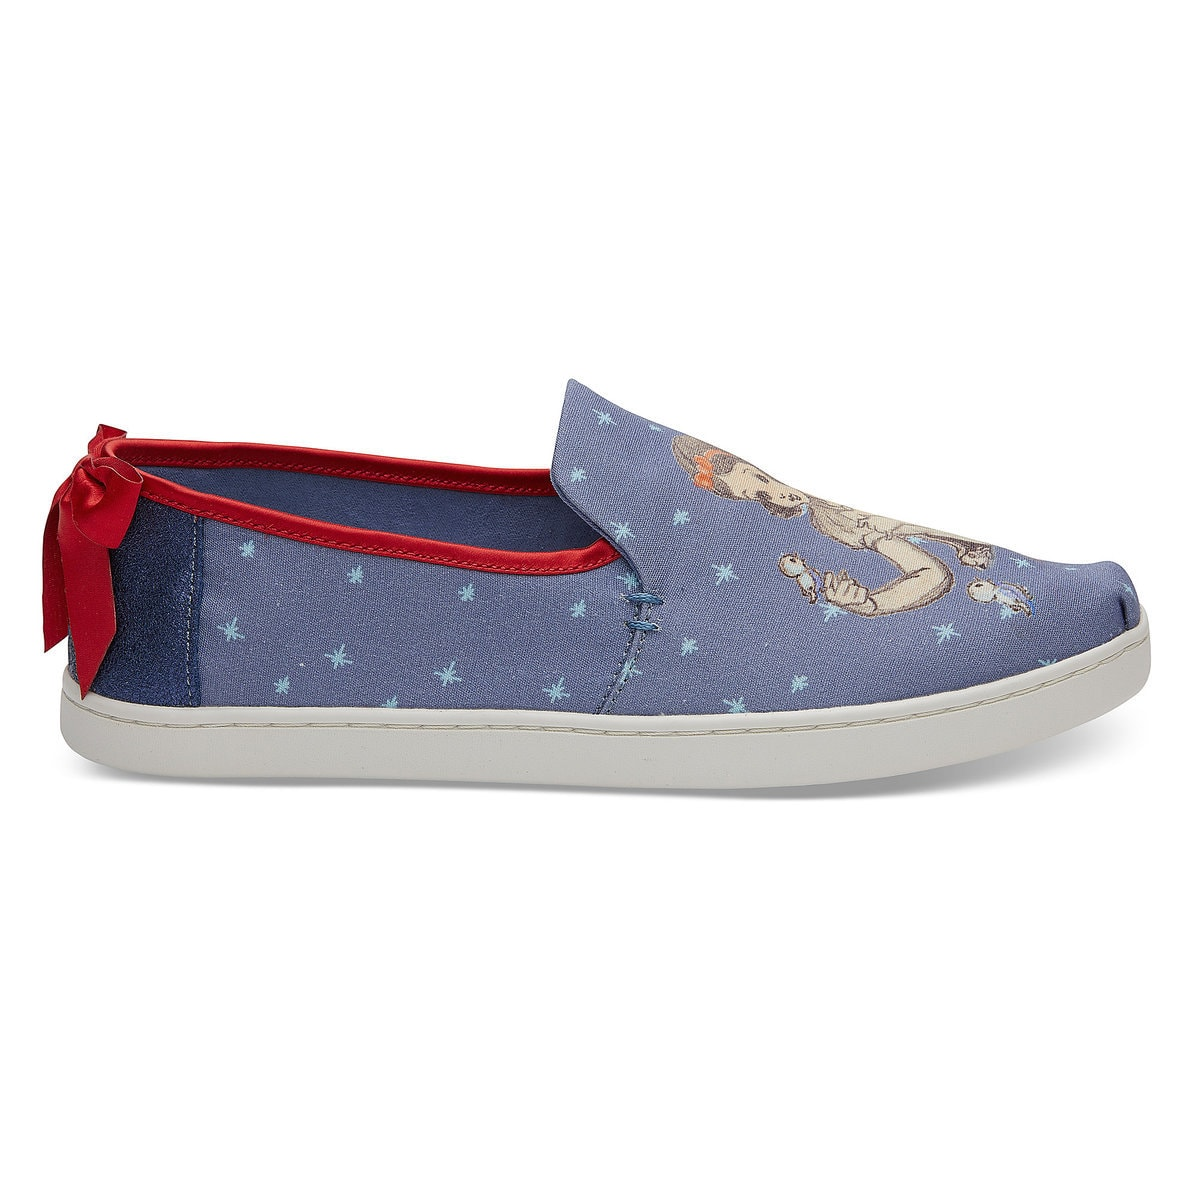 d787e07d02f Product Image of Snow White and the Seven Dwarfs Canvas Shoes for Women by  TOMS